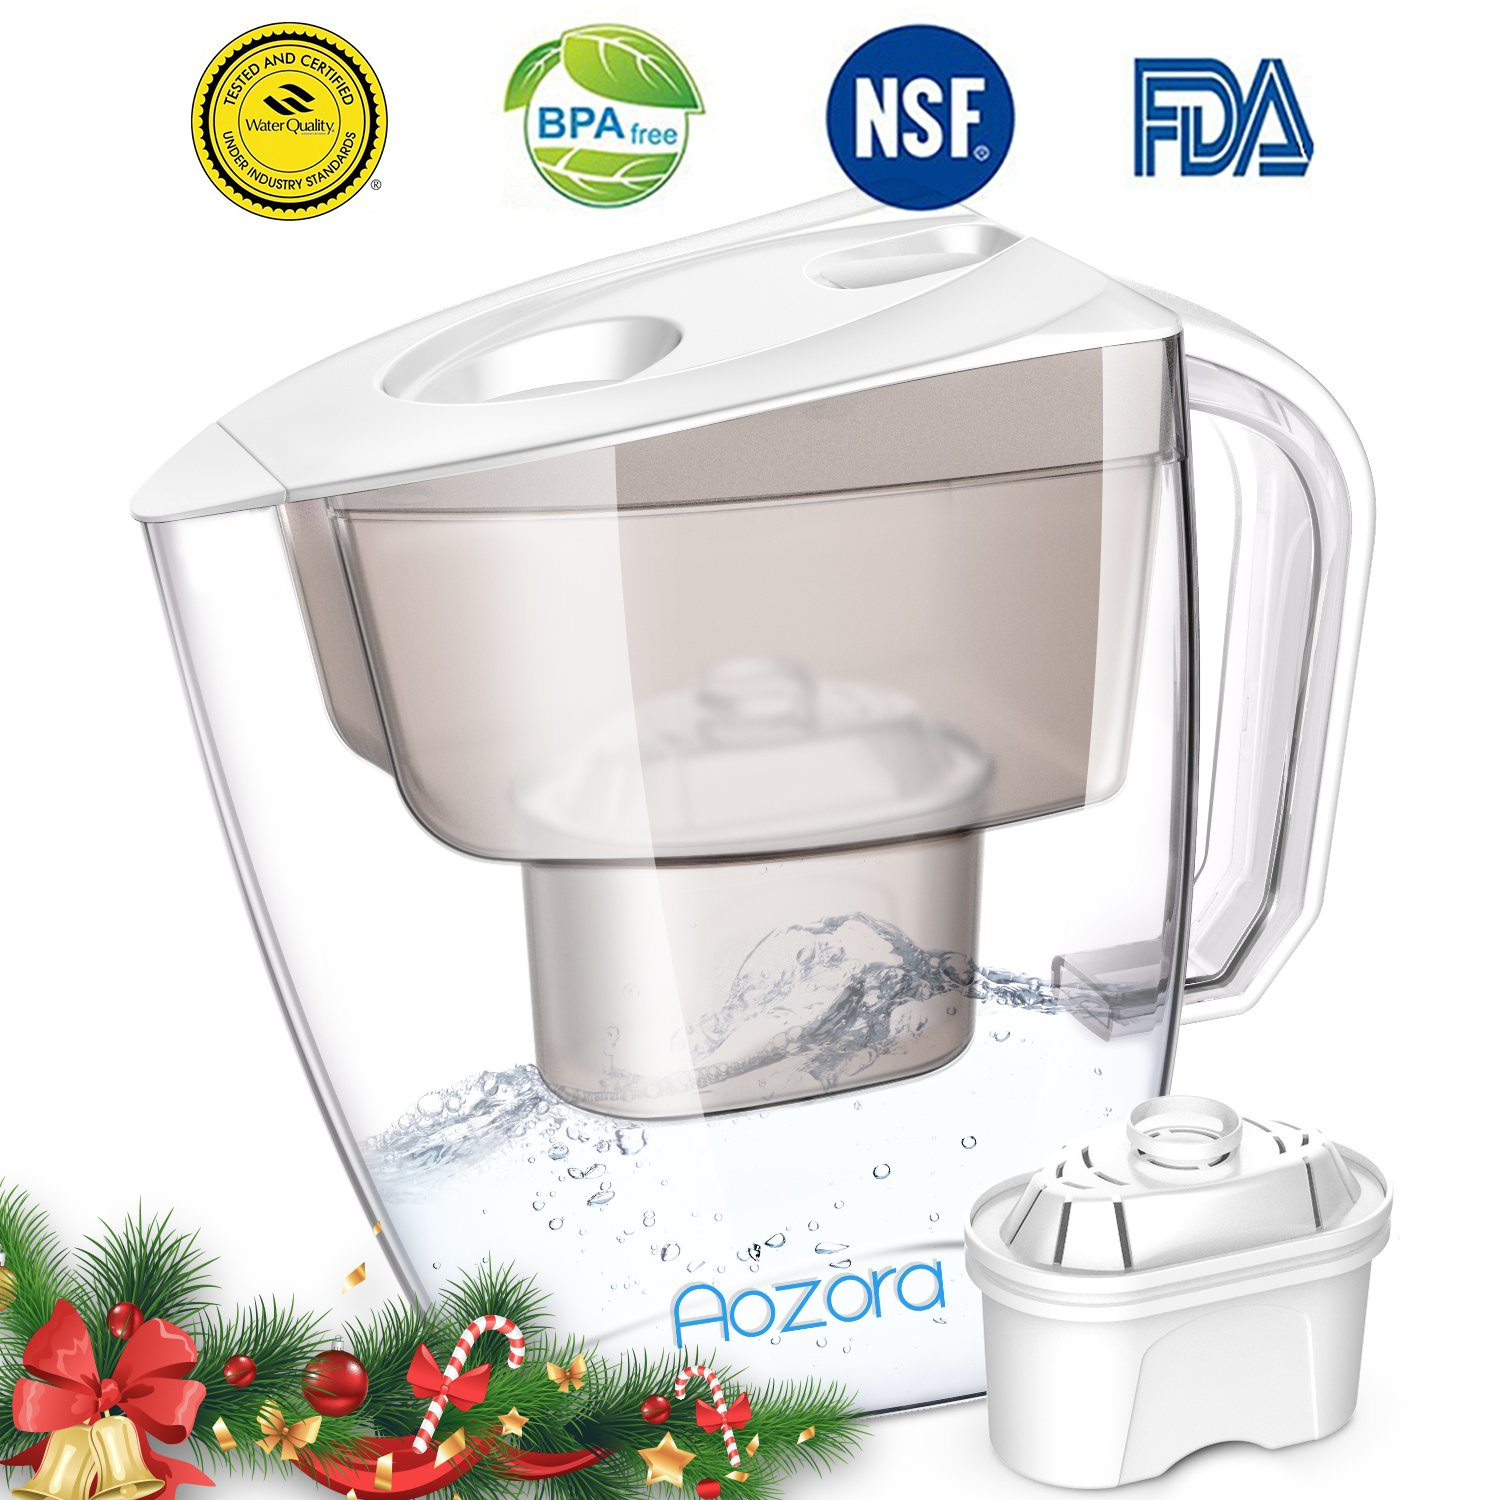 Water Filter Pitcher – Large Water Purifier Pitcher with Chlorine Removal Filter, BPA Free Water Filtration Pitchers for Home Baby, 4 Stage Filtration System Water Pitcher, 3.5L Capacity, Clear